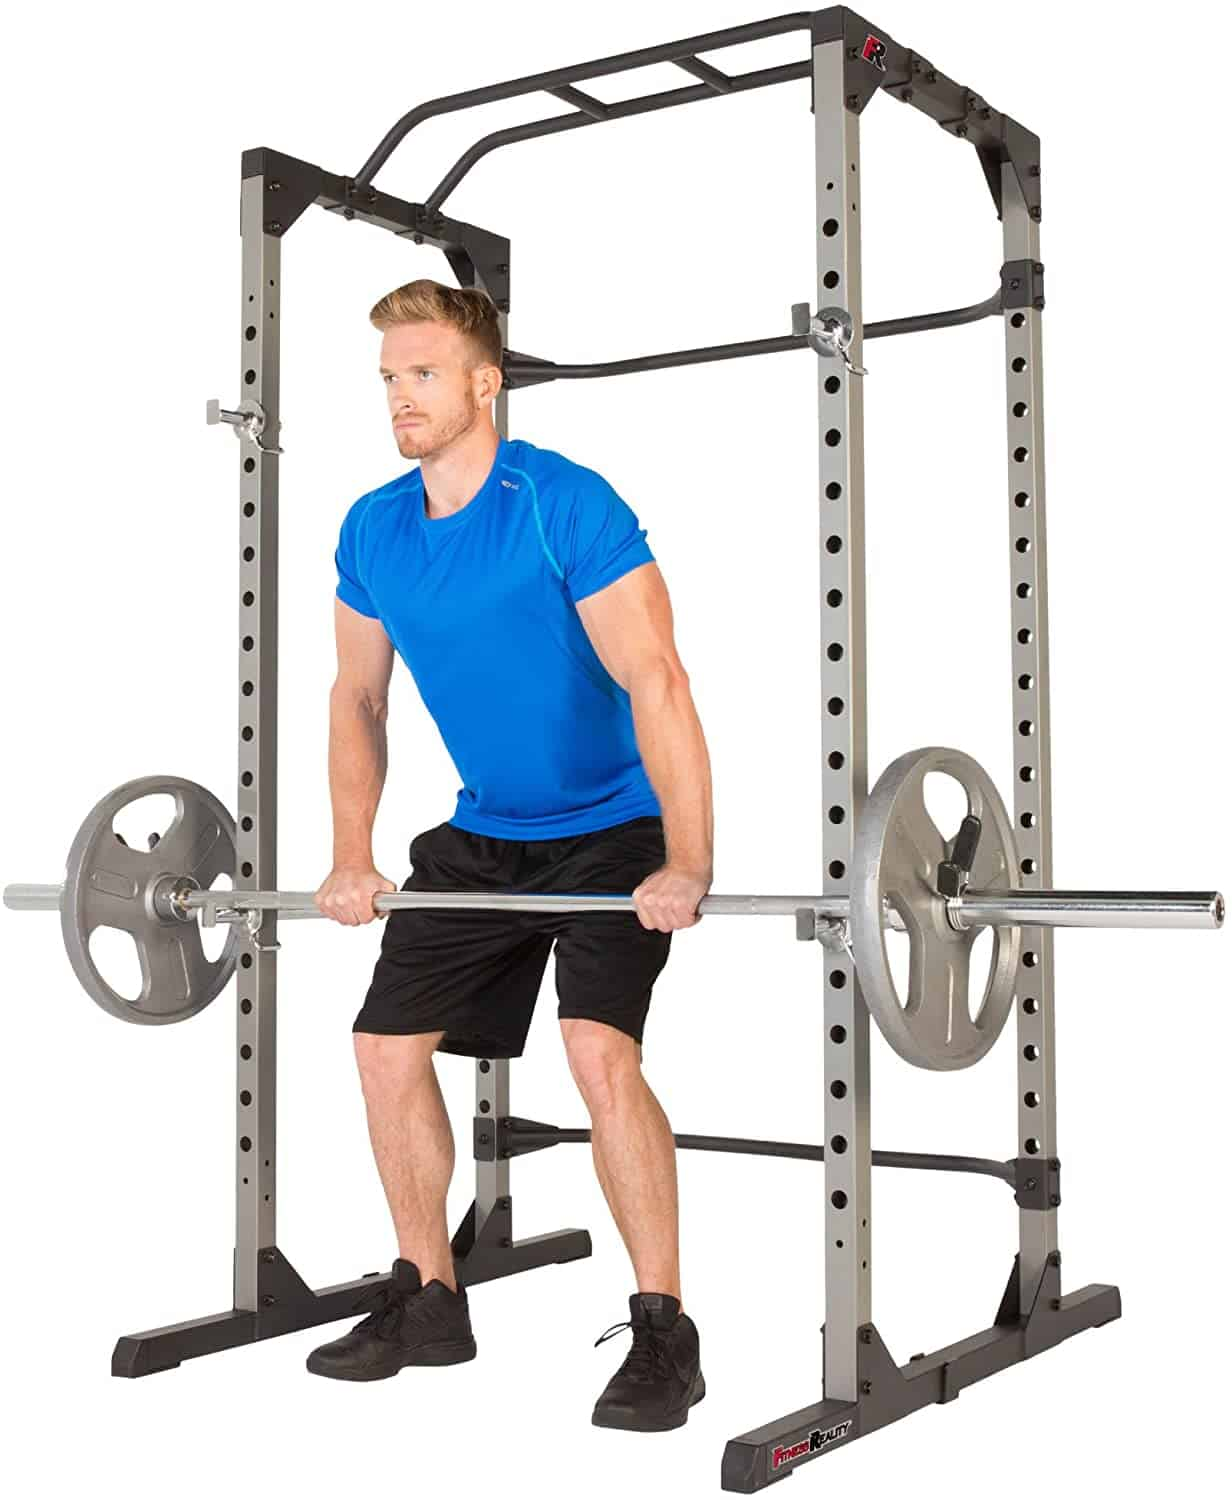 Beste power rack all-round: Fitness Reality 810XLT Super Max Power Cage